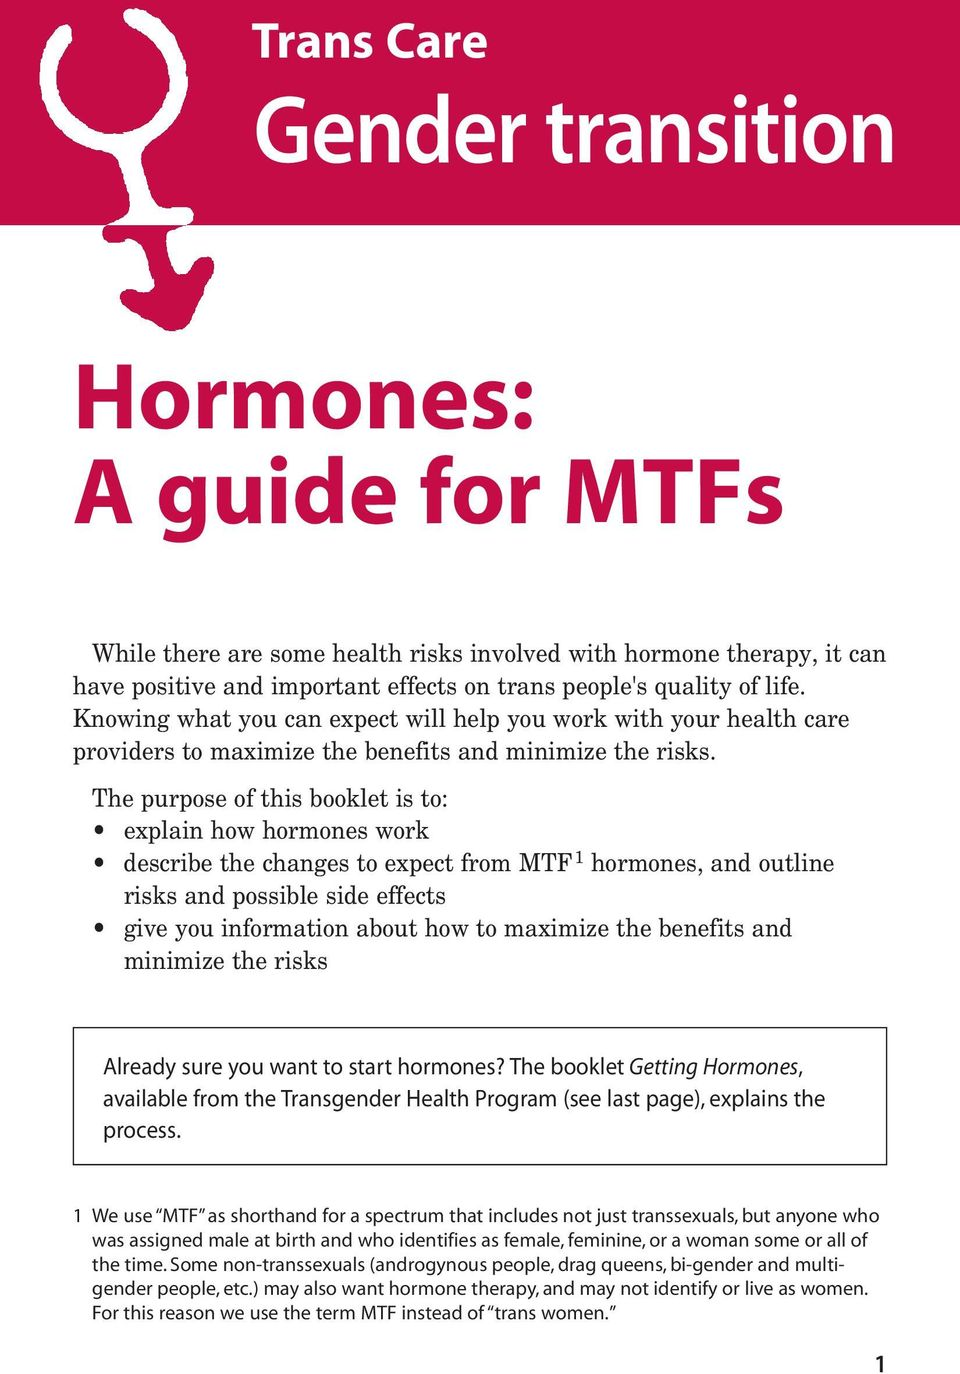 The purpose of this booklet is to: explain how hormones work describe the changes to expect from MTF 1 hormones, and outline risks and possible side effects give you information about how to maximize